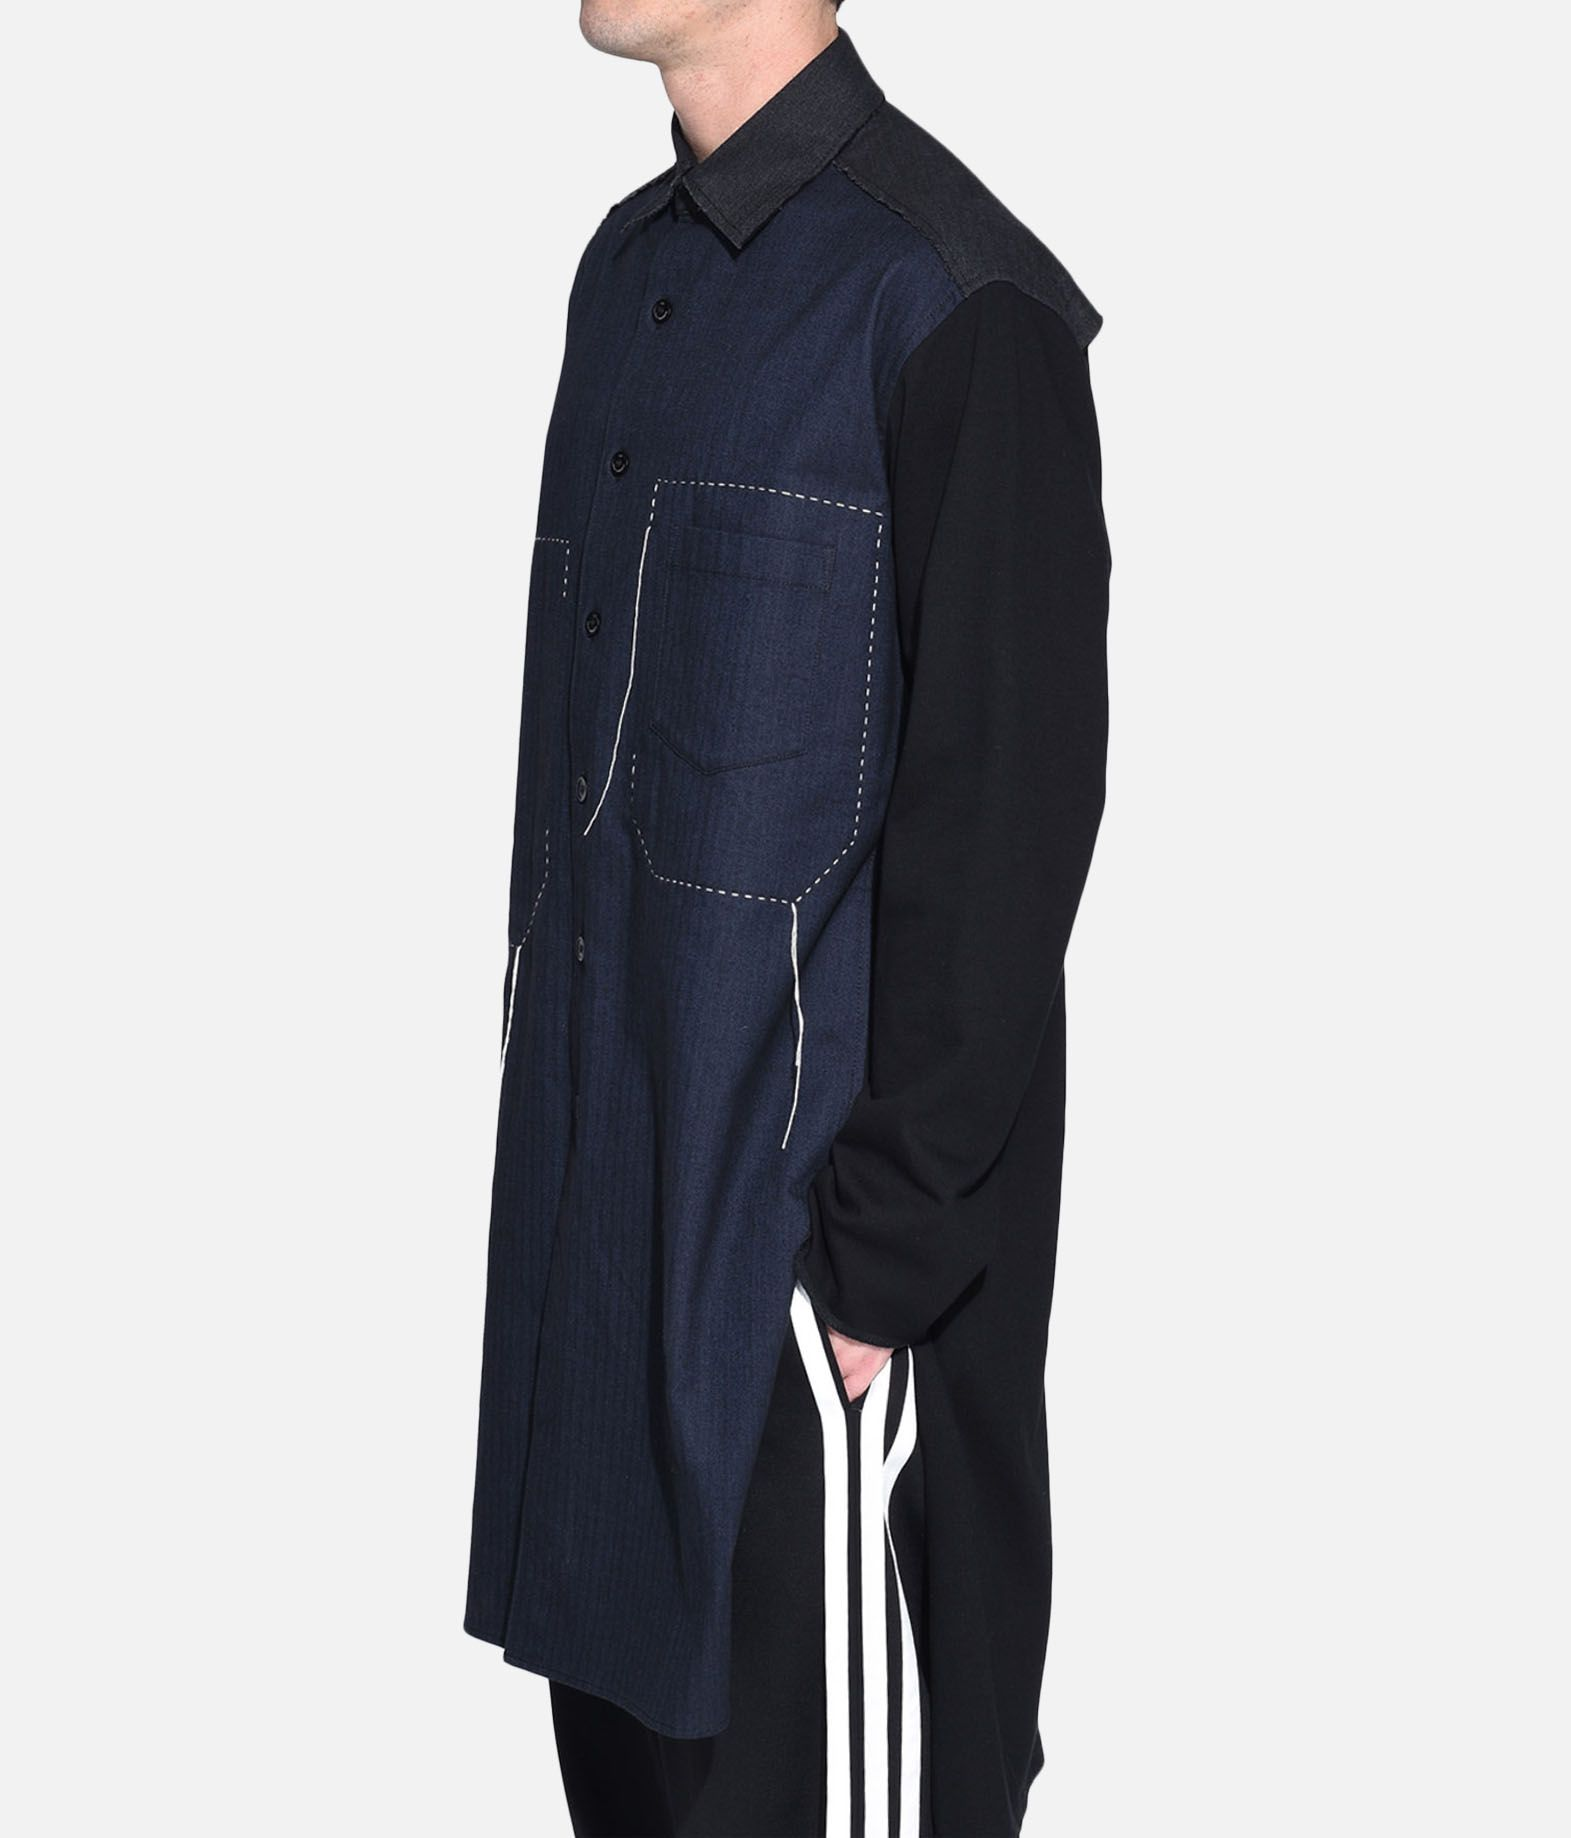 Y-3 Y-3 Herringbone Long Shirt Long sleeve shirt Man e